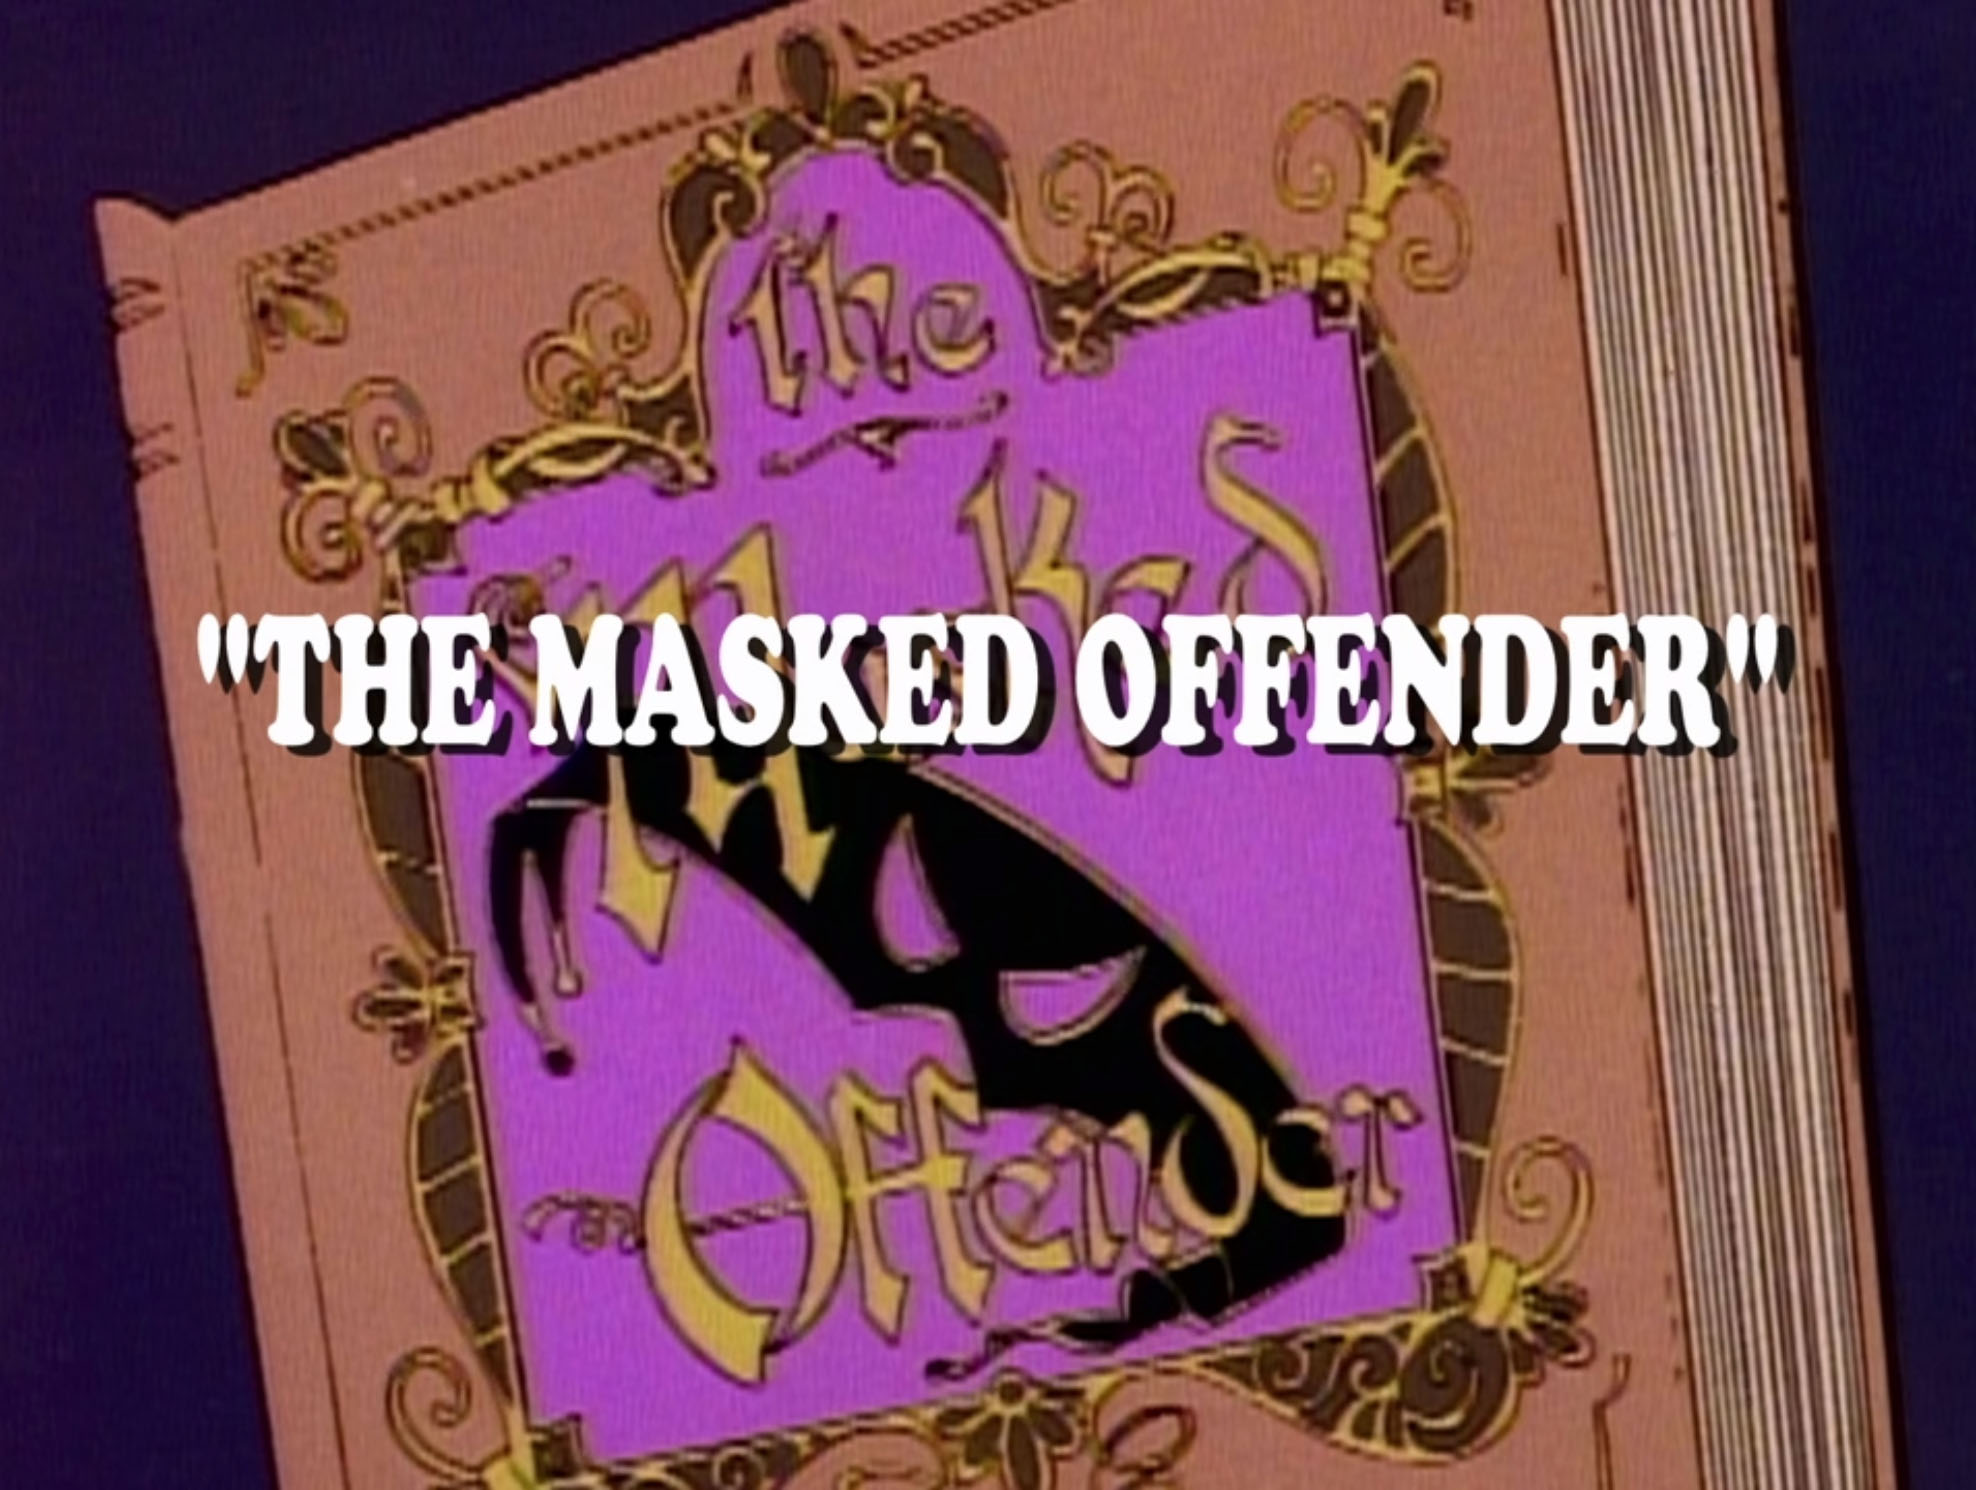 File:The Masked Offender.jpg